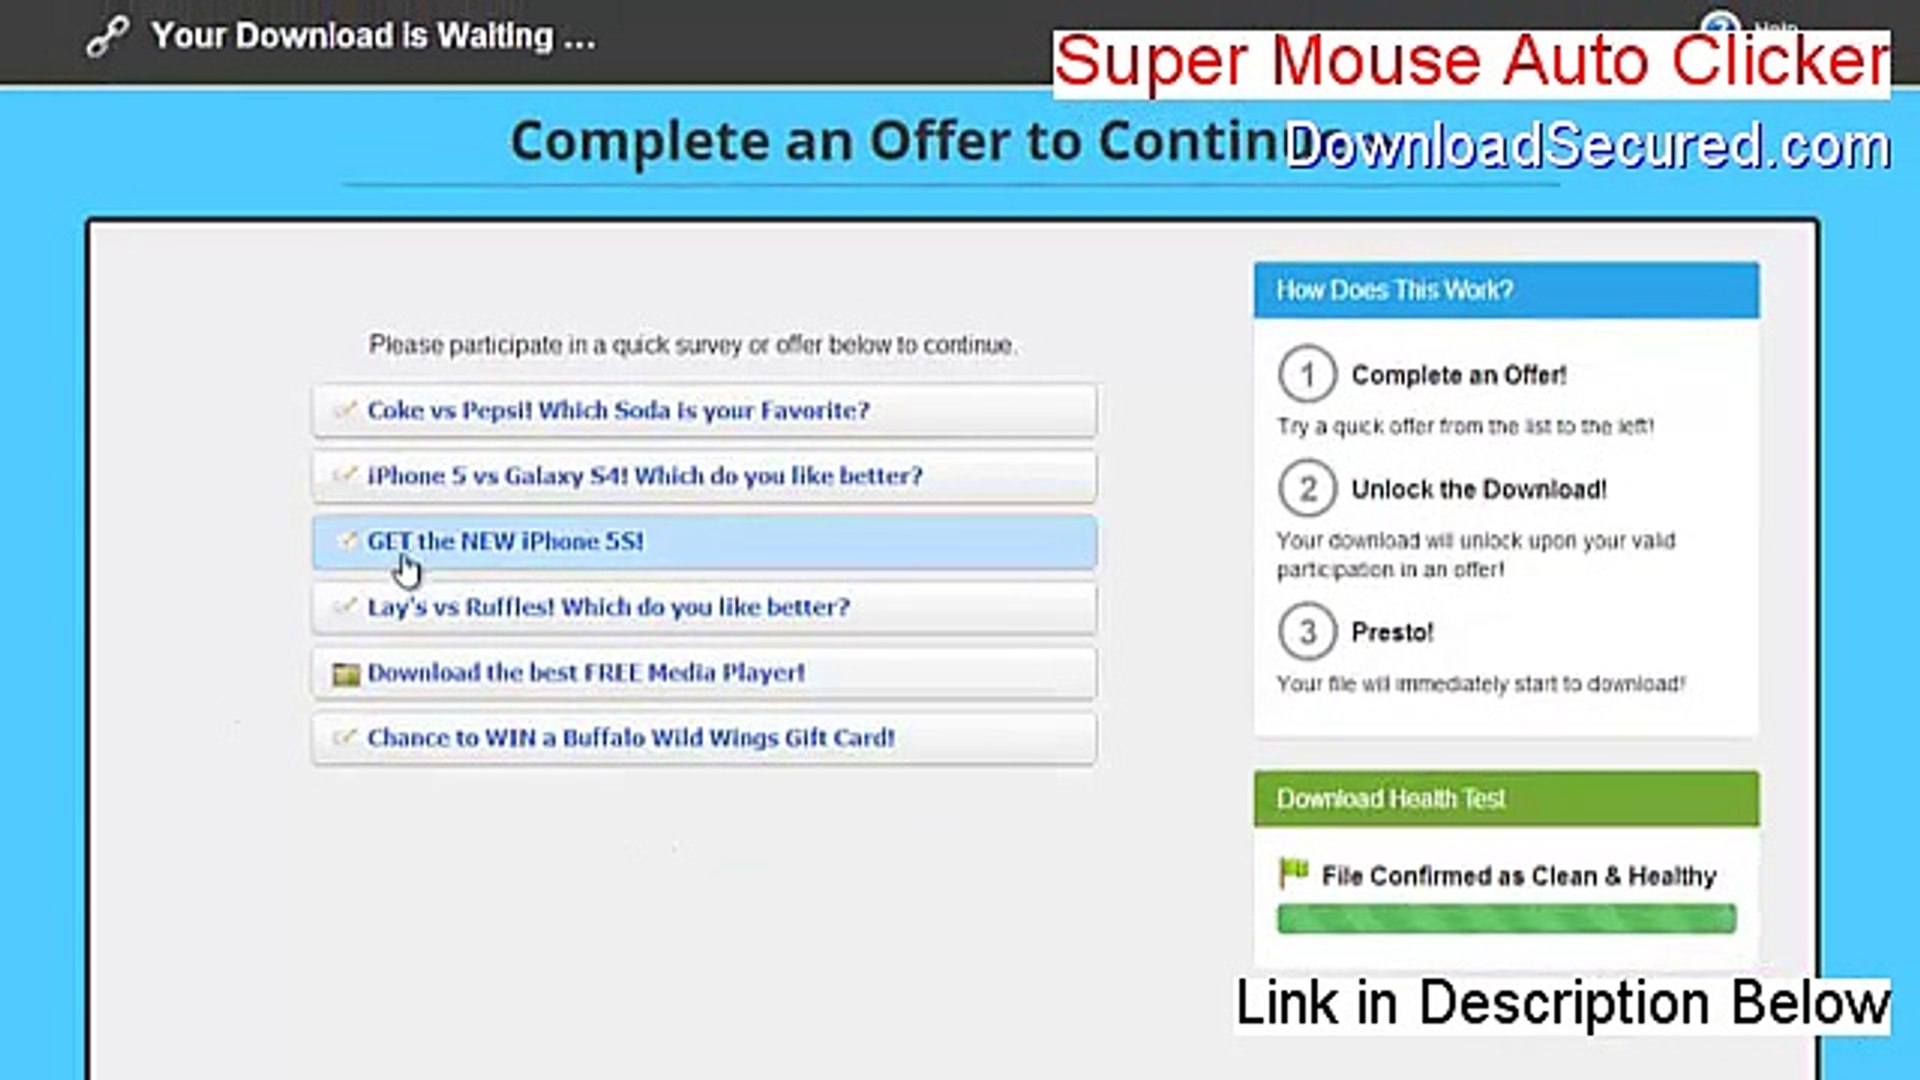 Agre crypto download super mouse auto clicker better together.